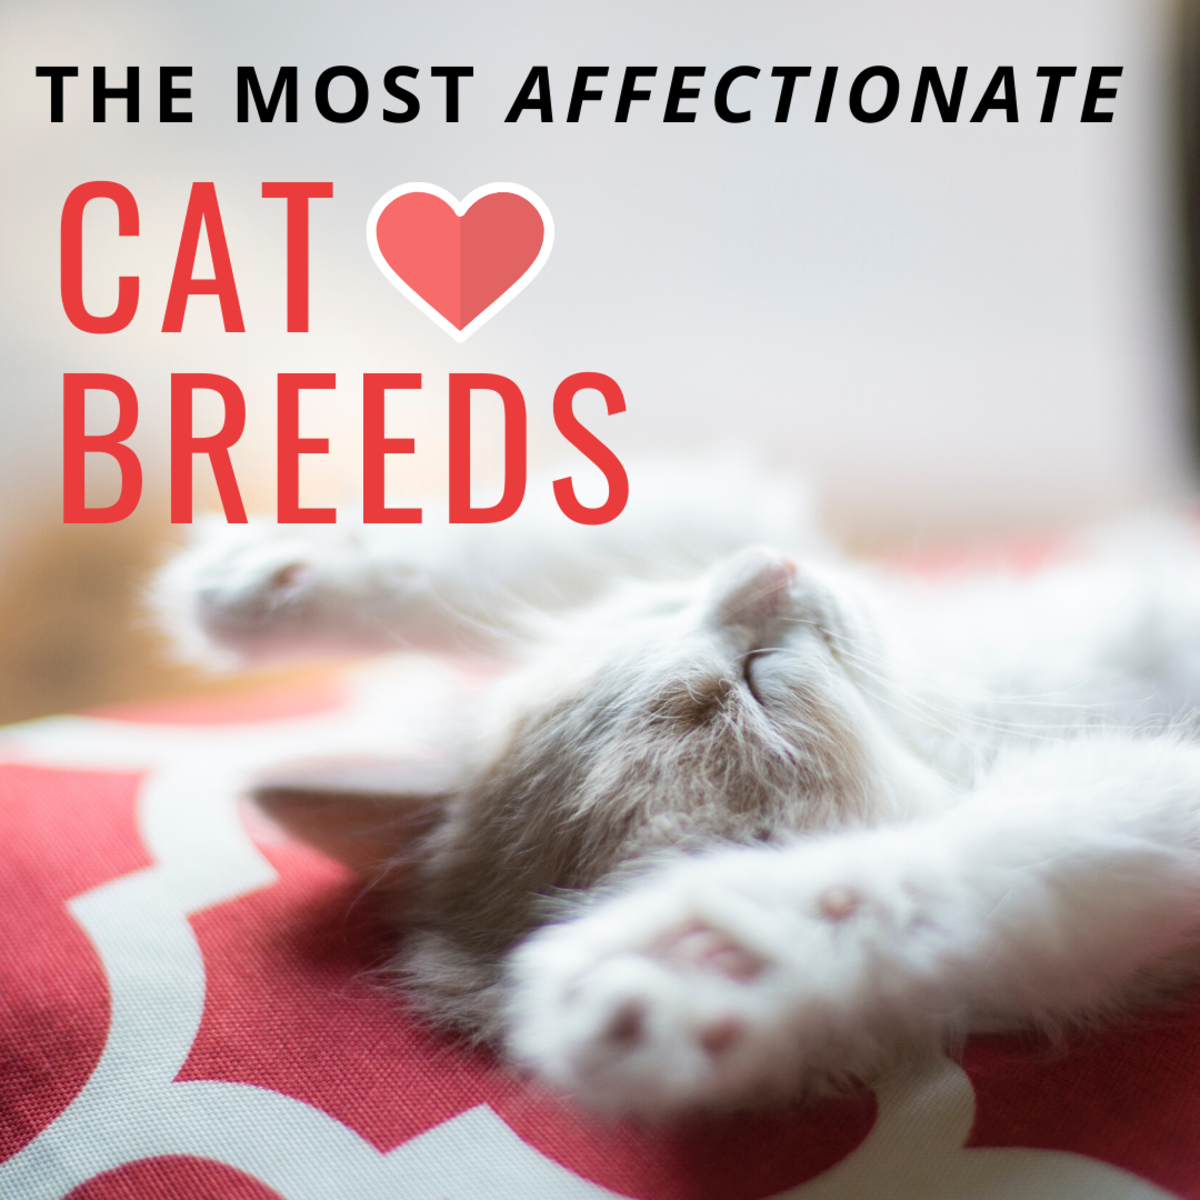 Top 10 Most Affectionate Cat Breeds That Love to Cuddle